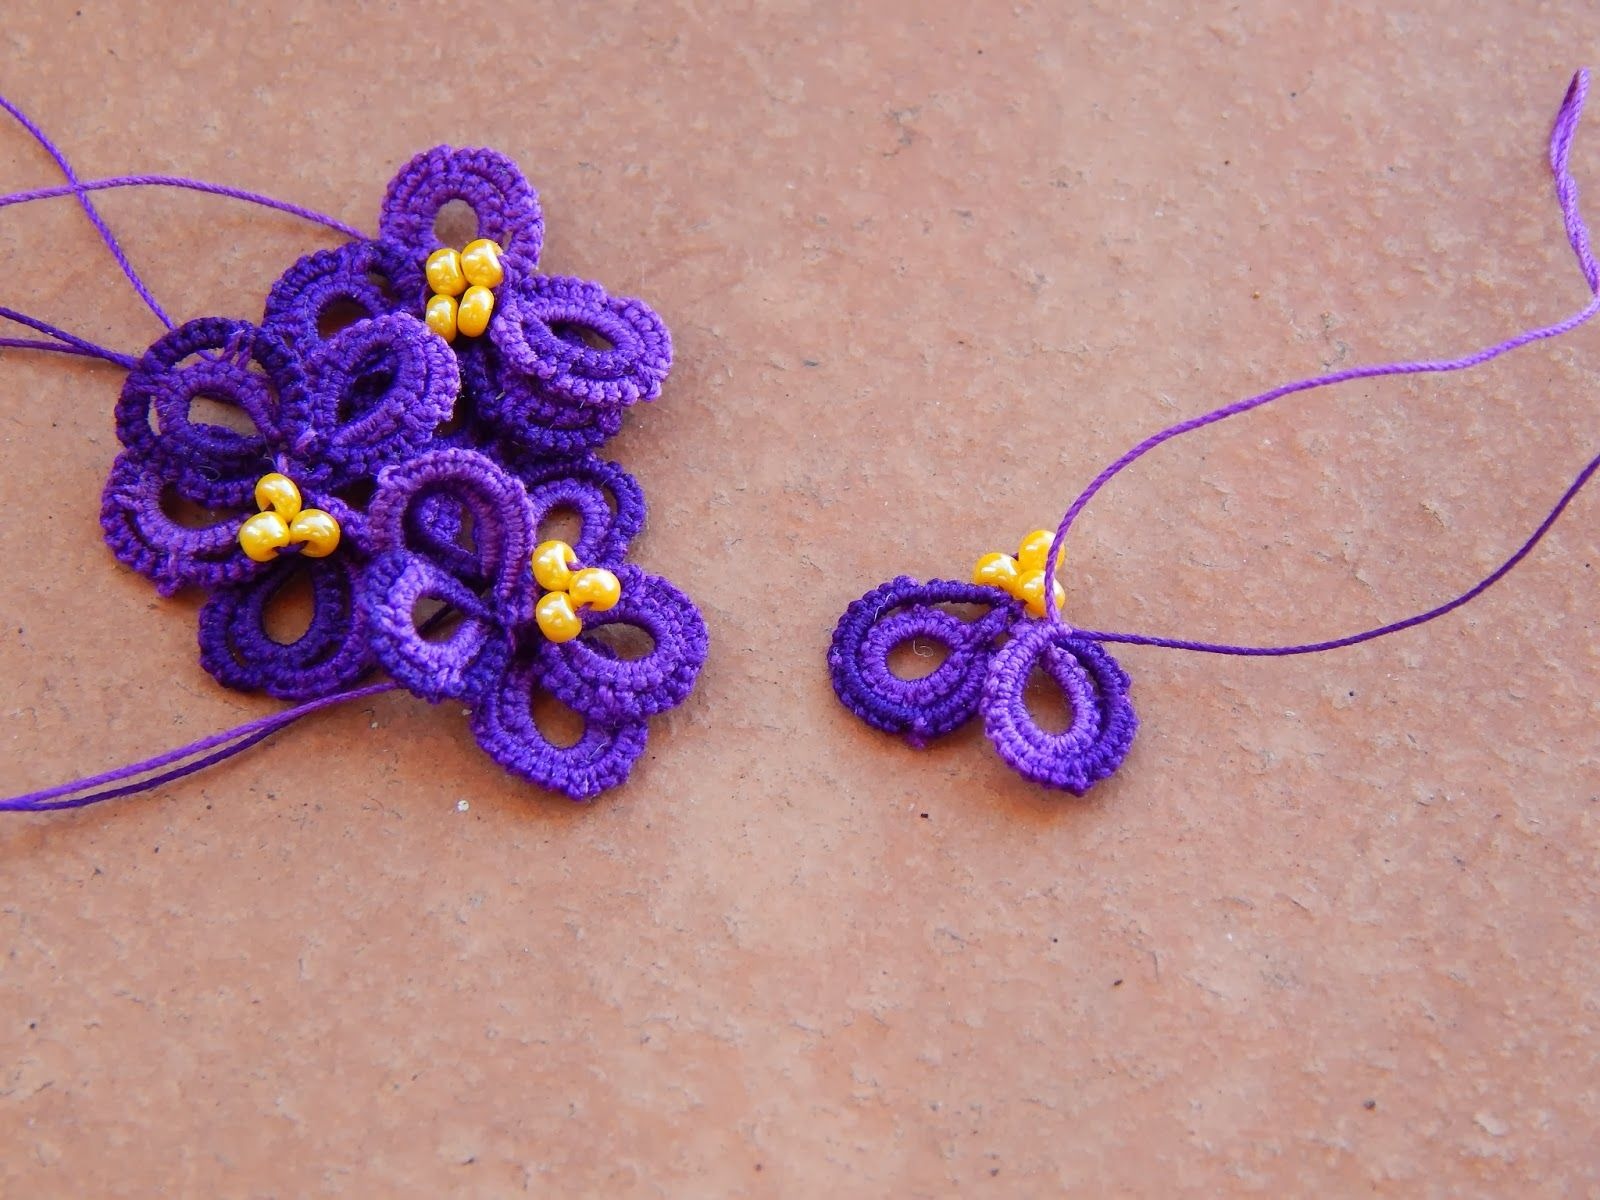 African Violet with tatting pattern at Carollyn's Tatting Blog: February's Frivolite flower!